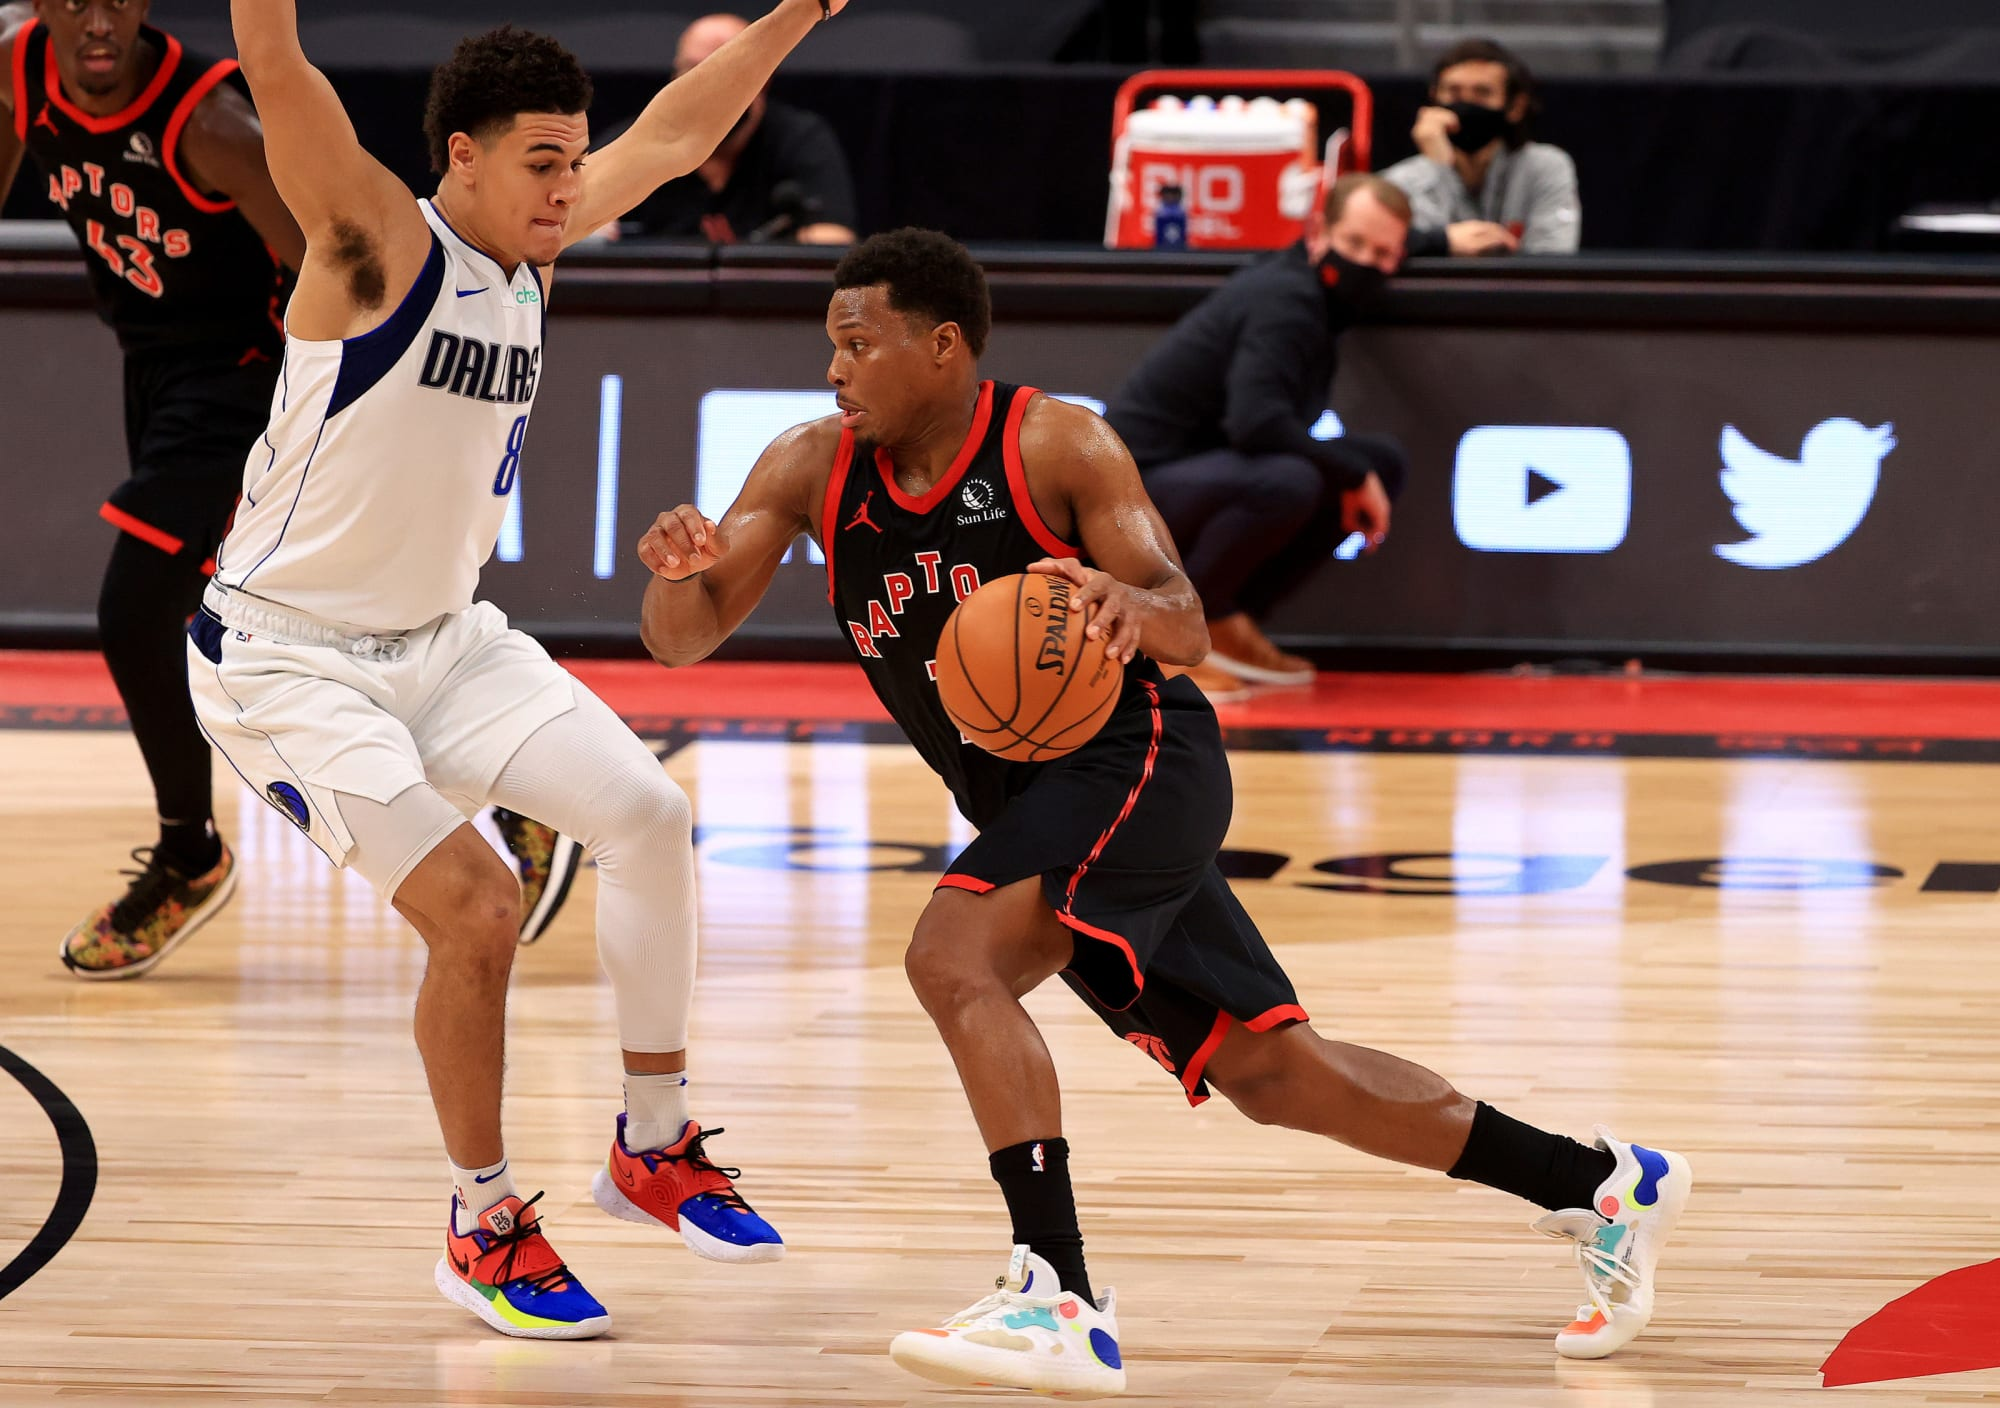 Takeaways from the Toronto Raptors win against the Mavericks